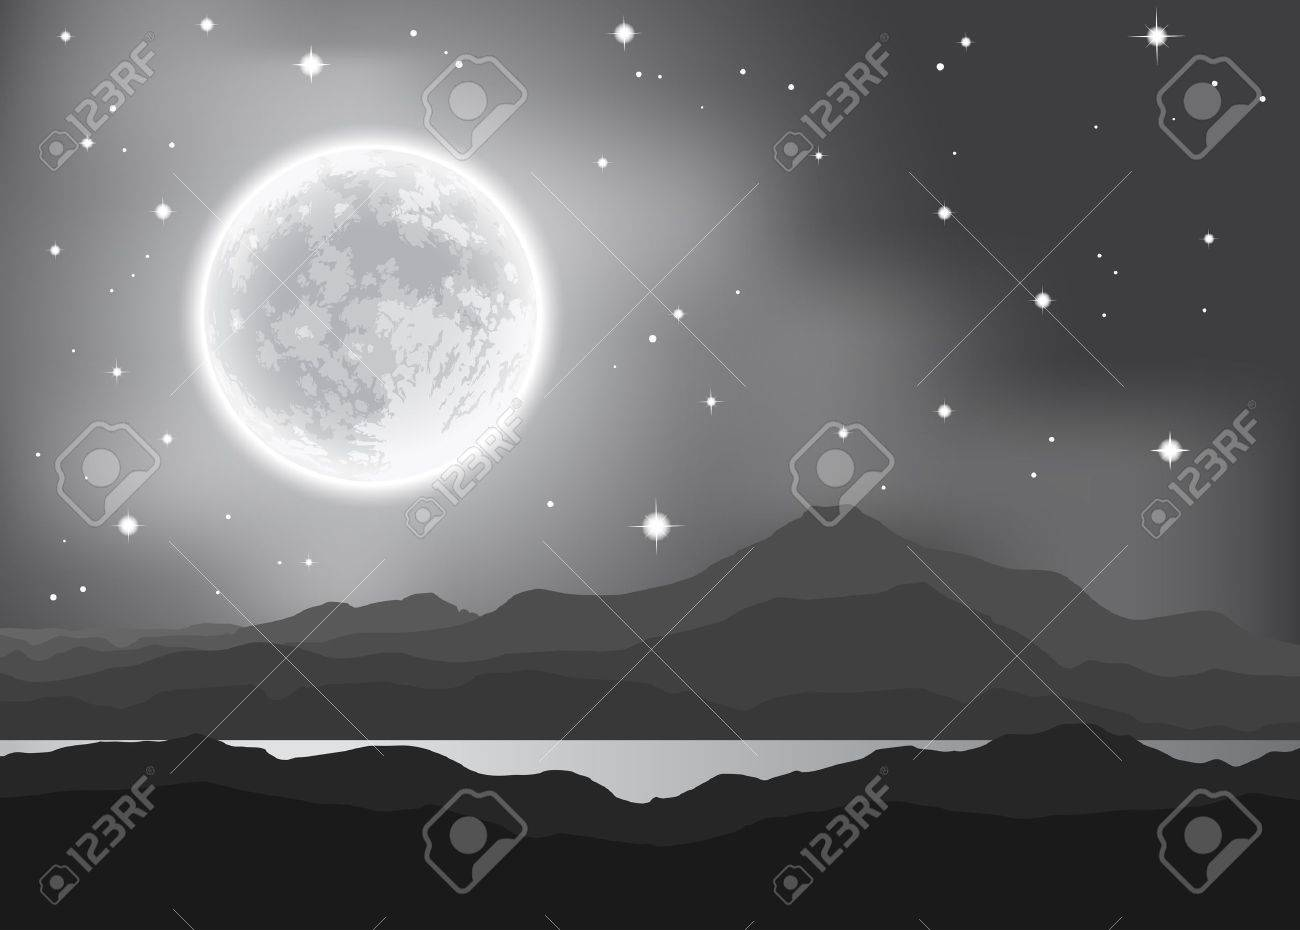 Full Moon over mountains and lake. Night landscape. - 30906844